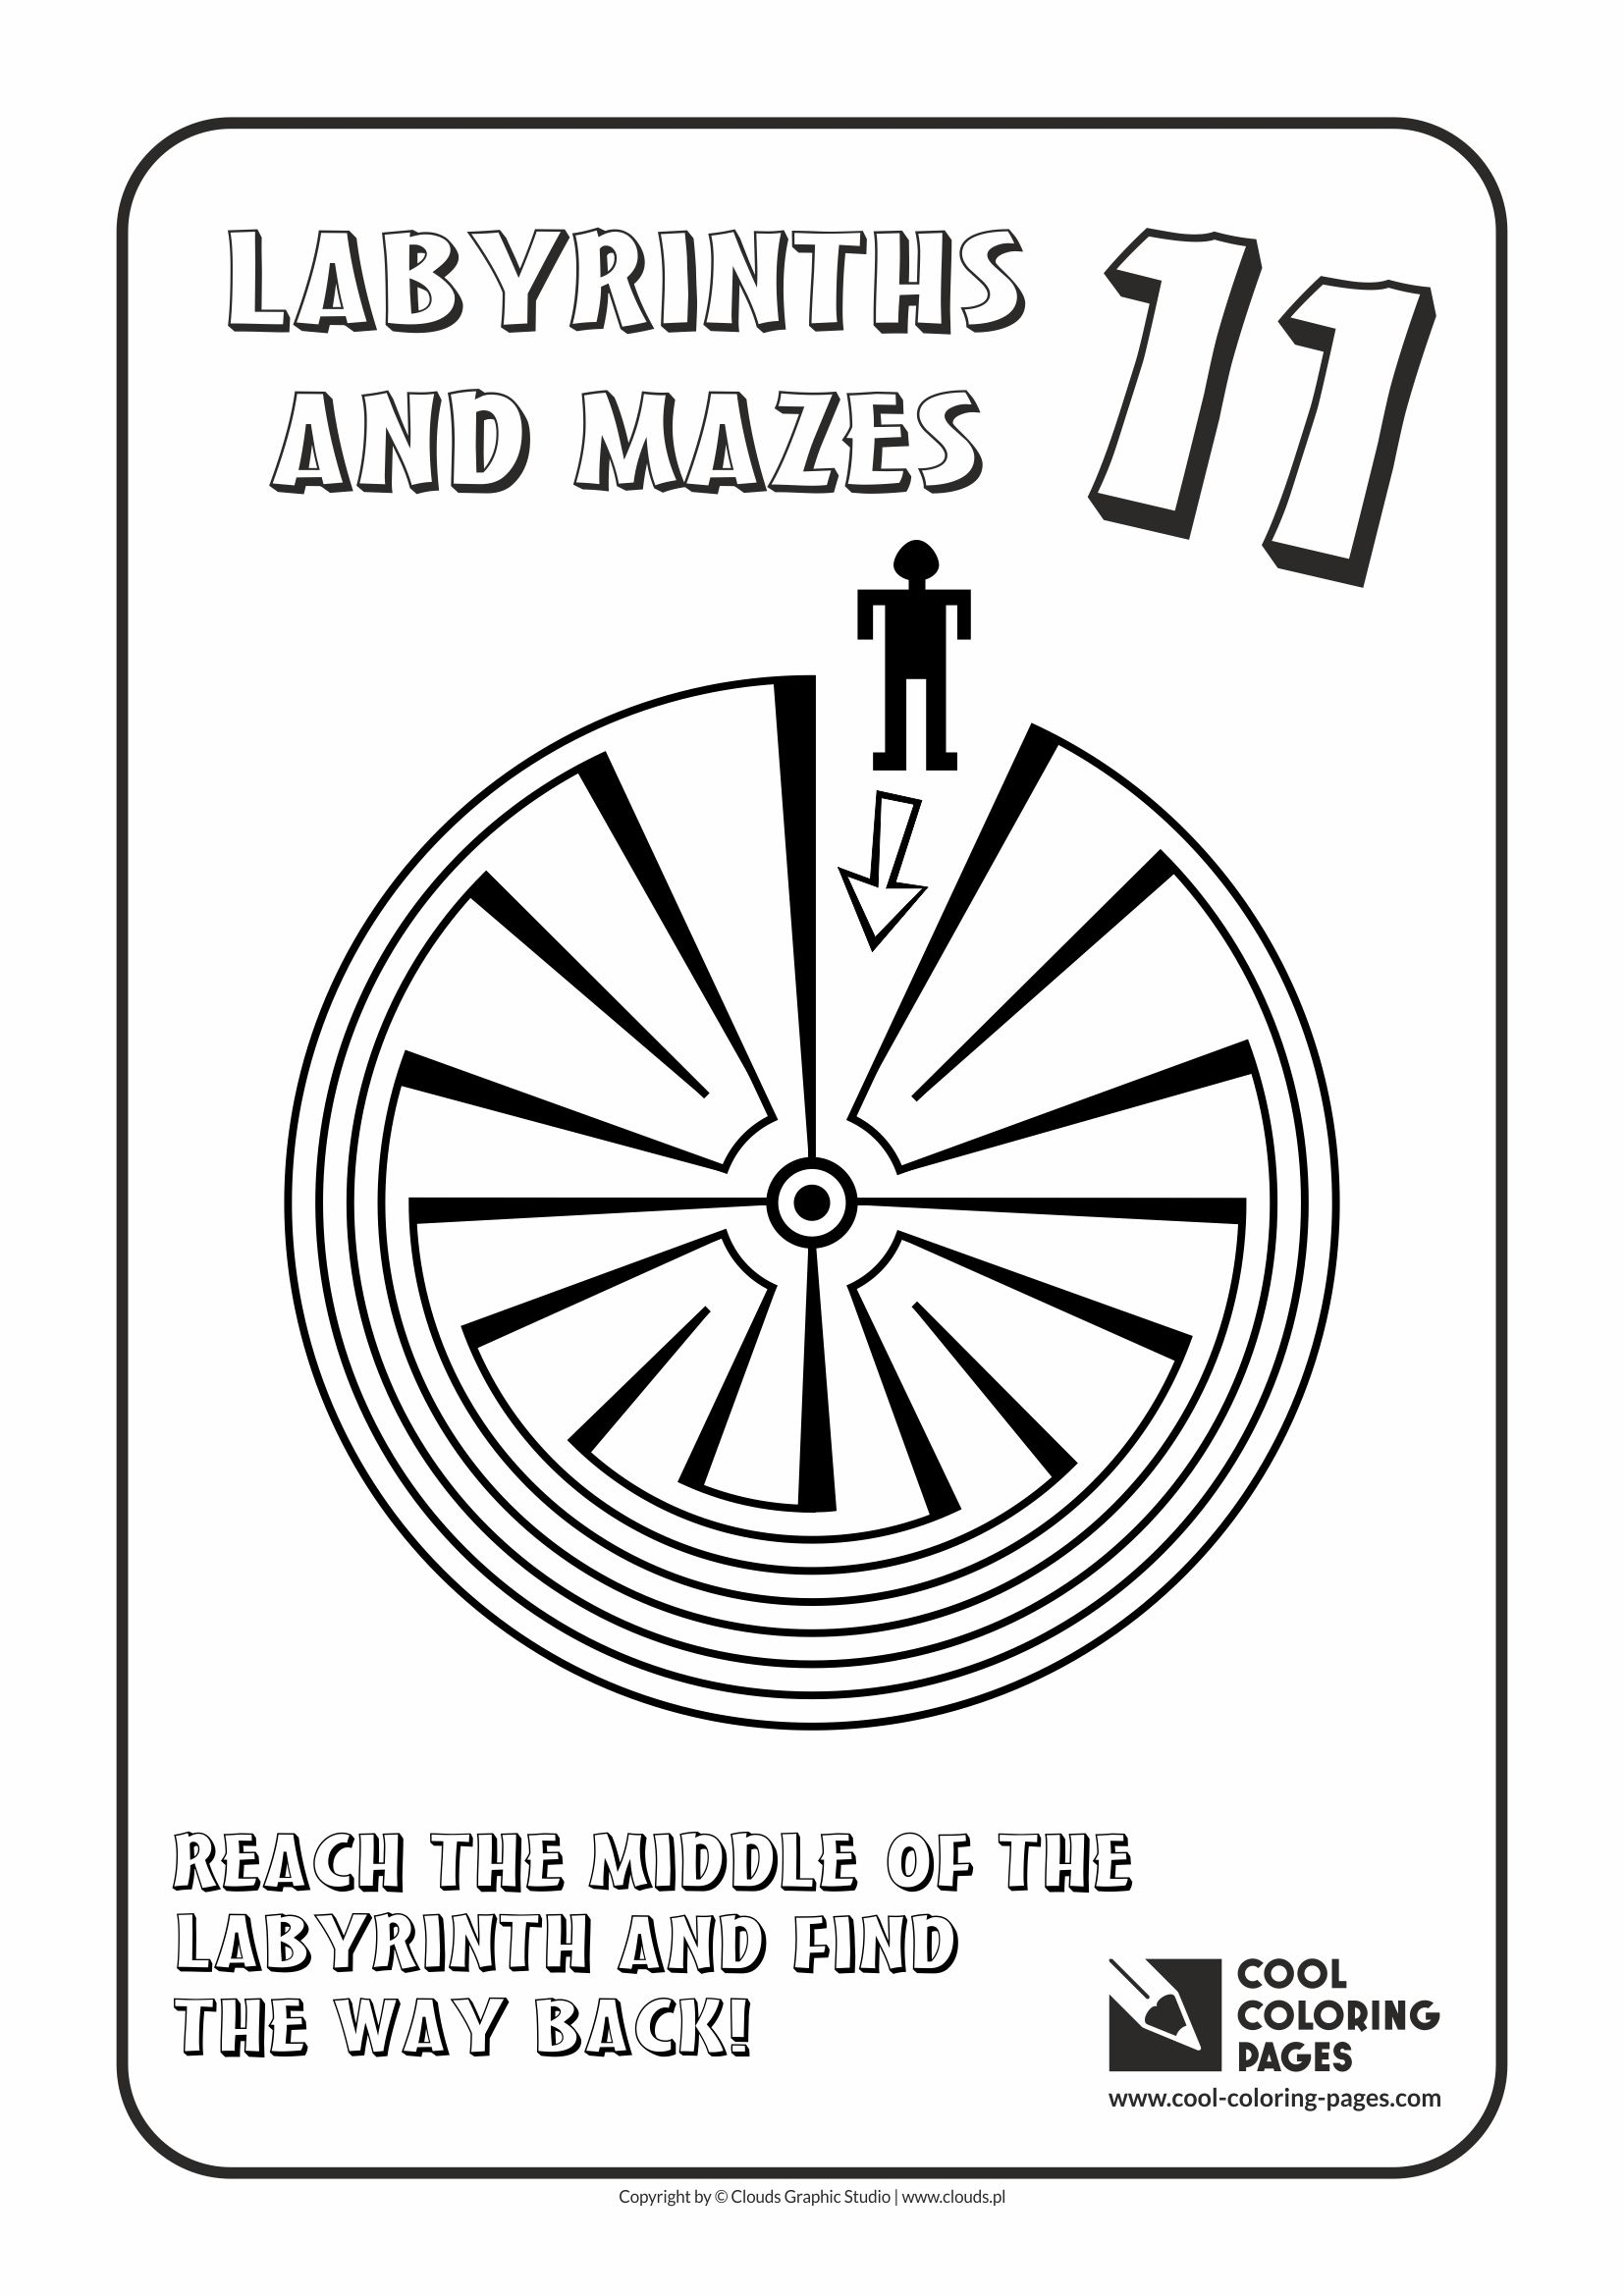 Cool Coloring Pages - Labyrinths and mazes / Maze no 11